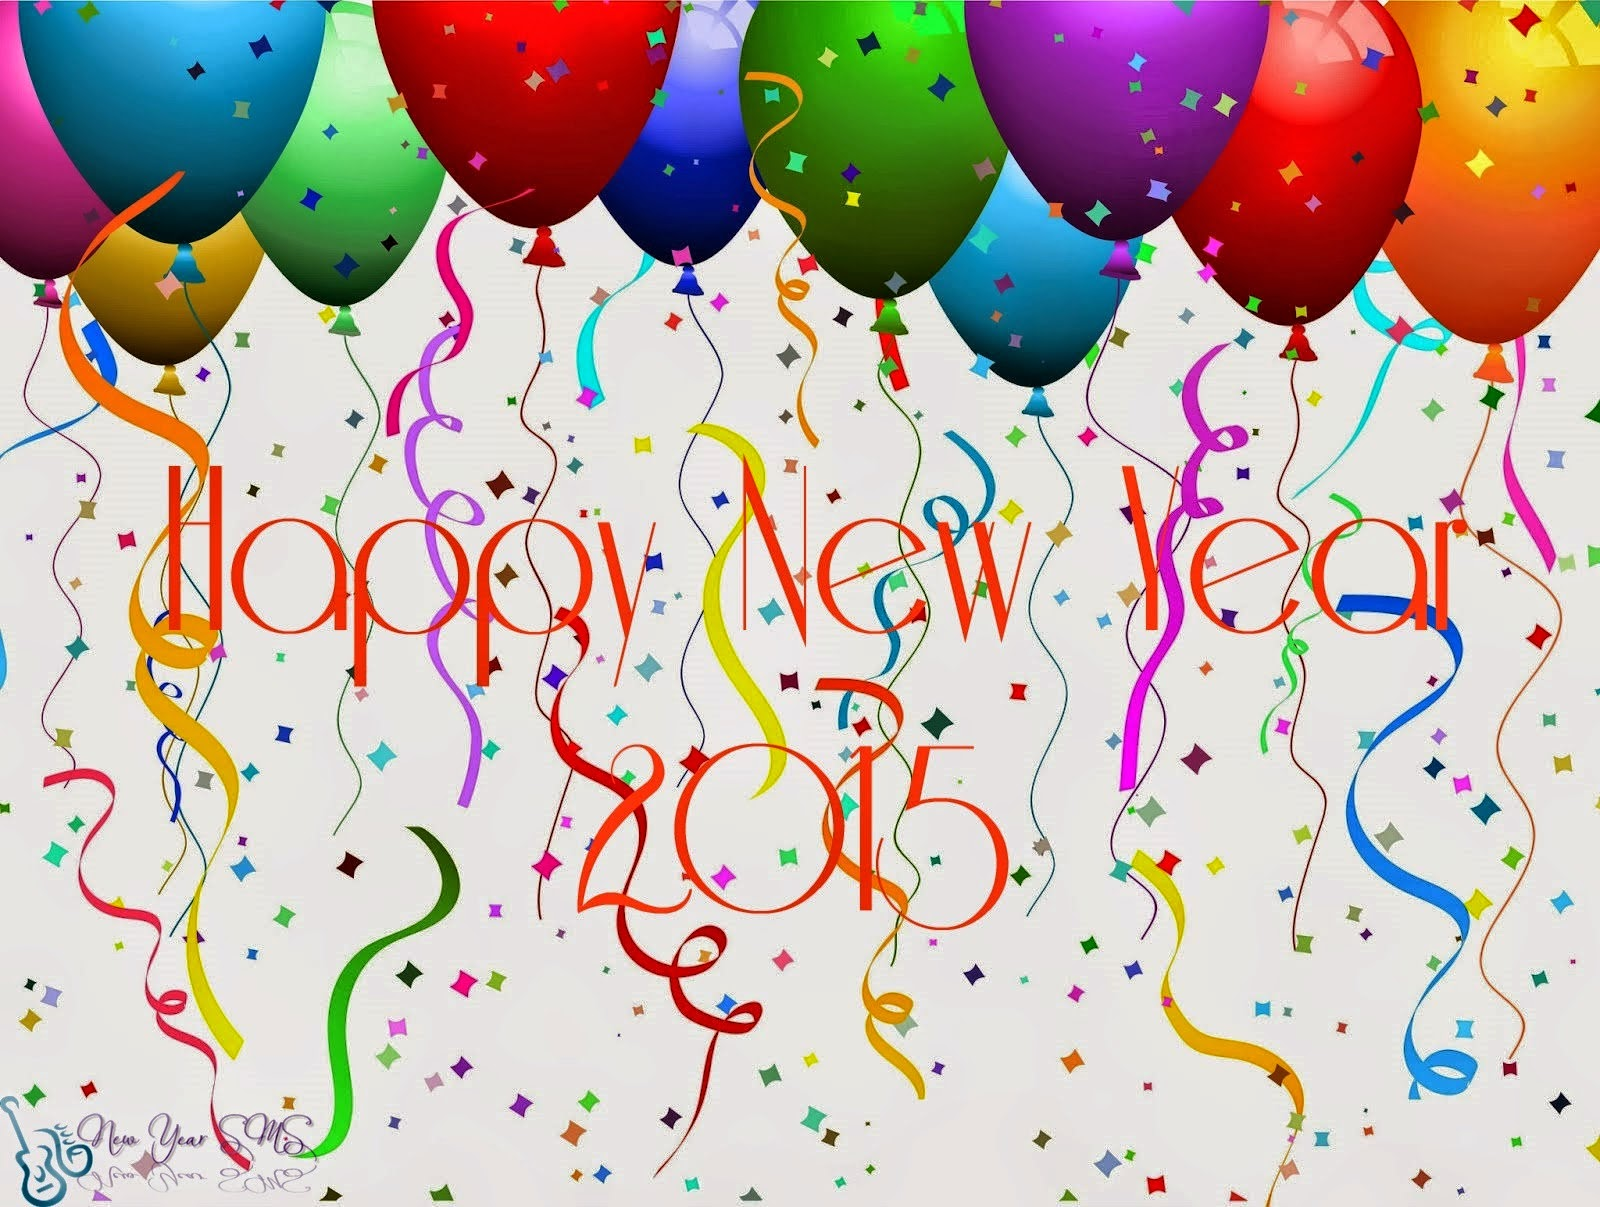 Happy New Year 2015 Backgrounds